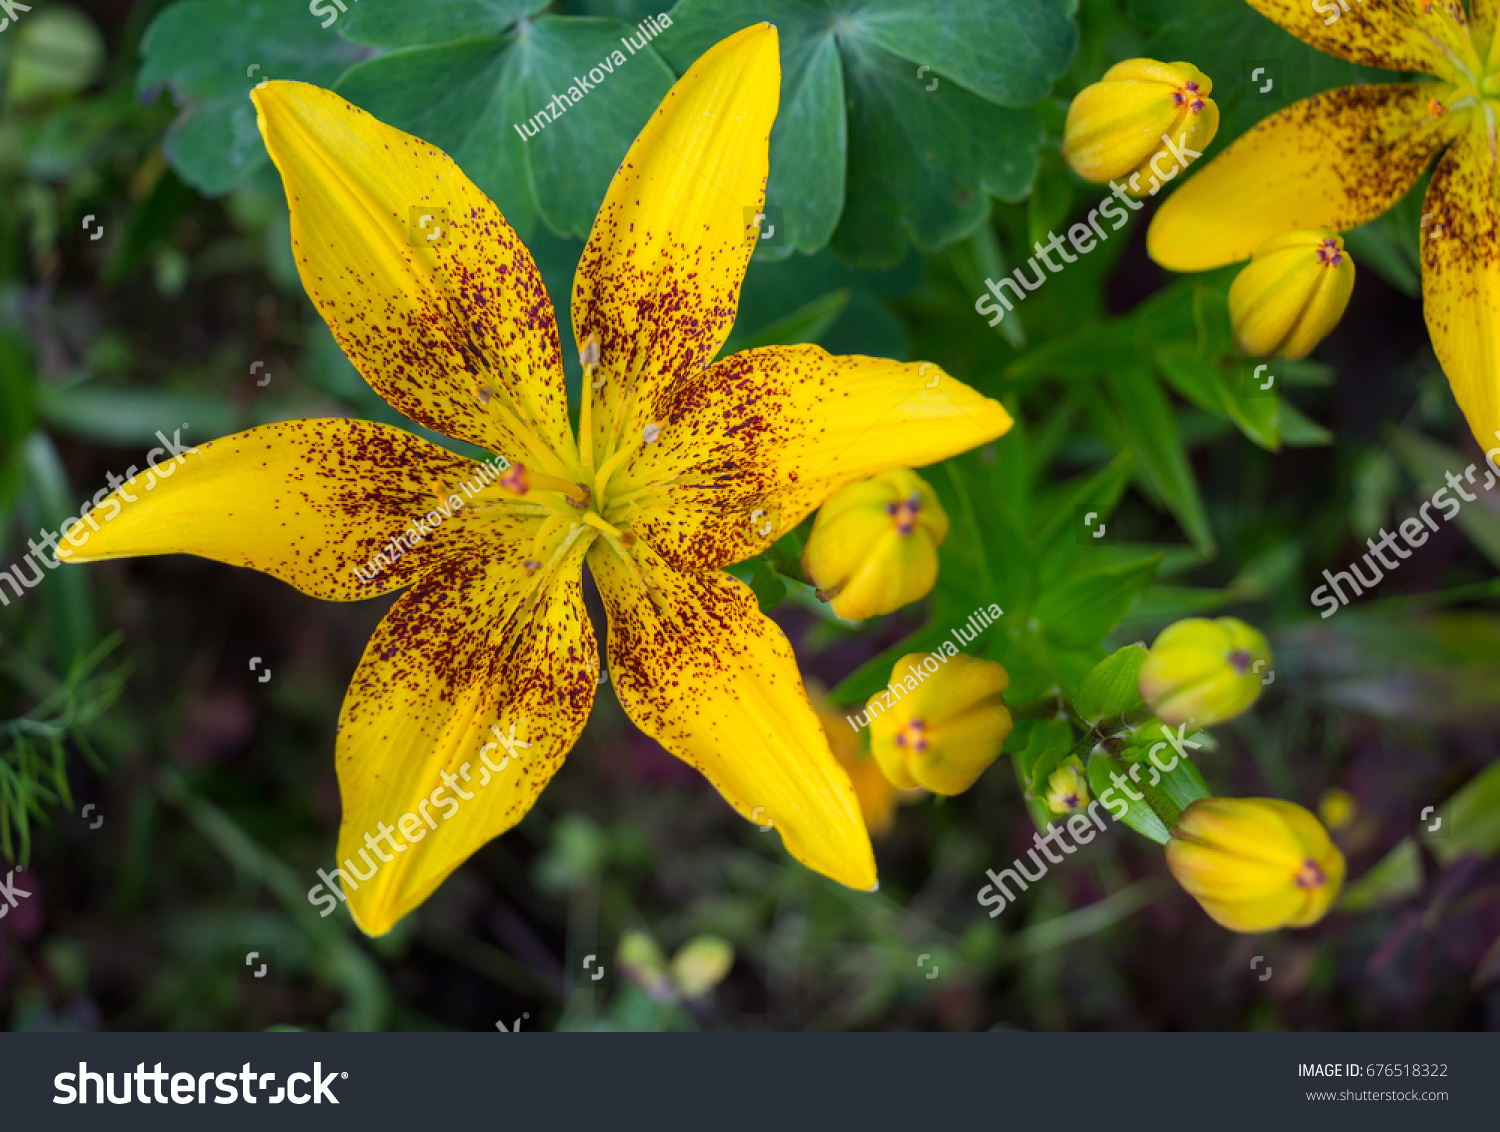 Flower yellow lily like little sun stock photo 676518322 shutterstock the flower of yellow lily like a little sun in the summer garden izmirmasajfo Image collections